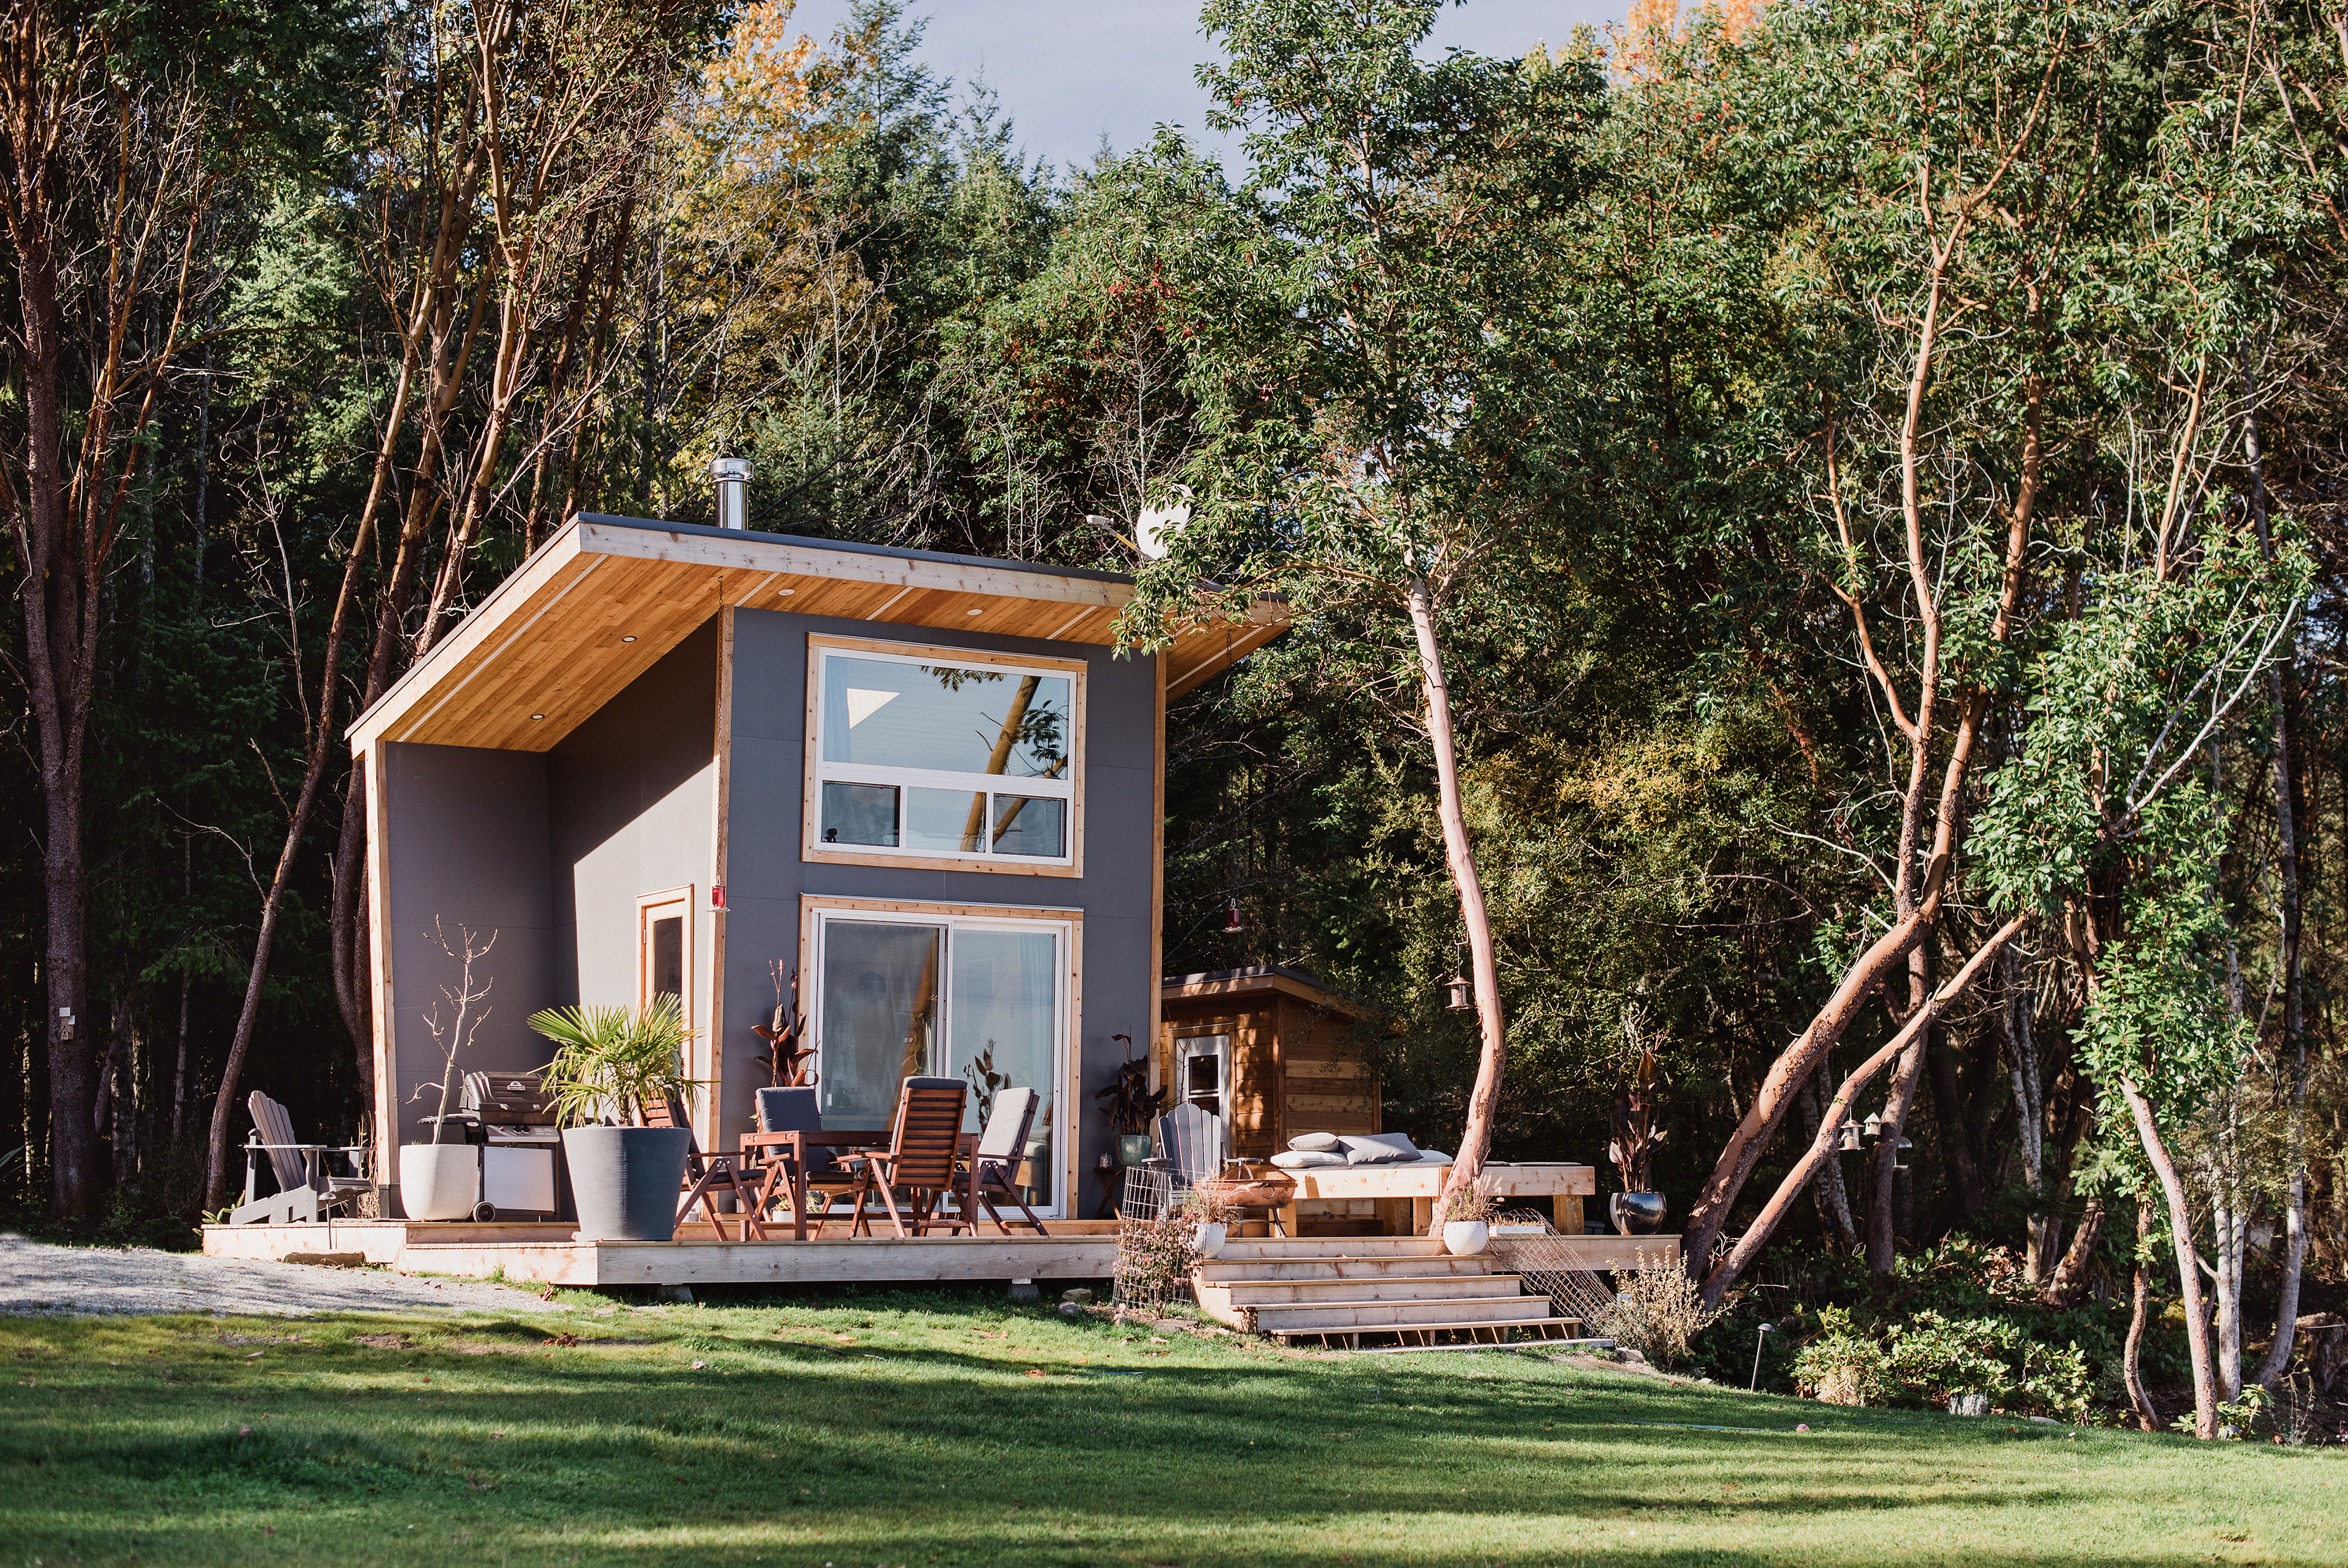 100-square-foot tiny house designed for indoor-outdoor living